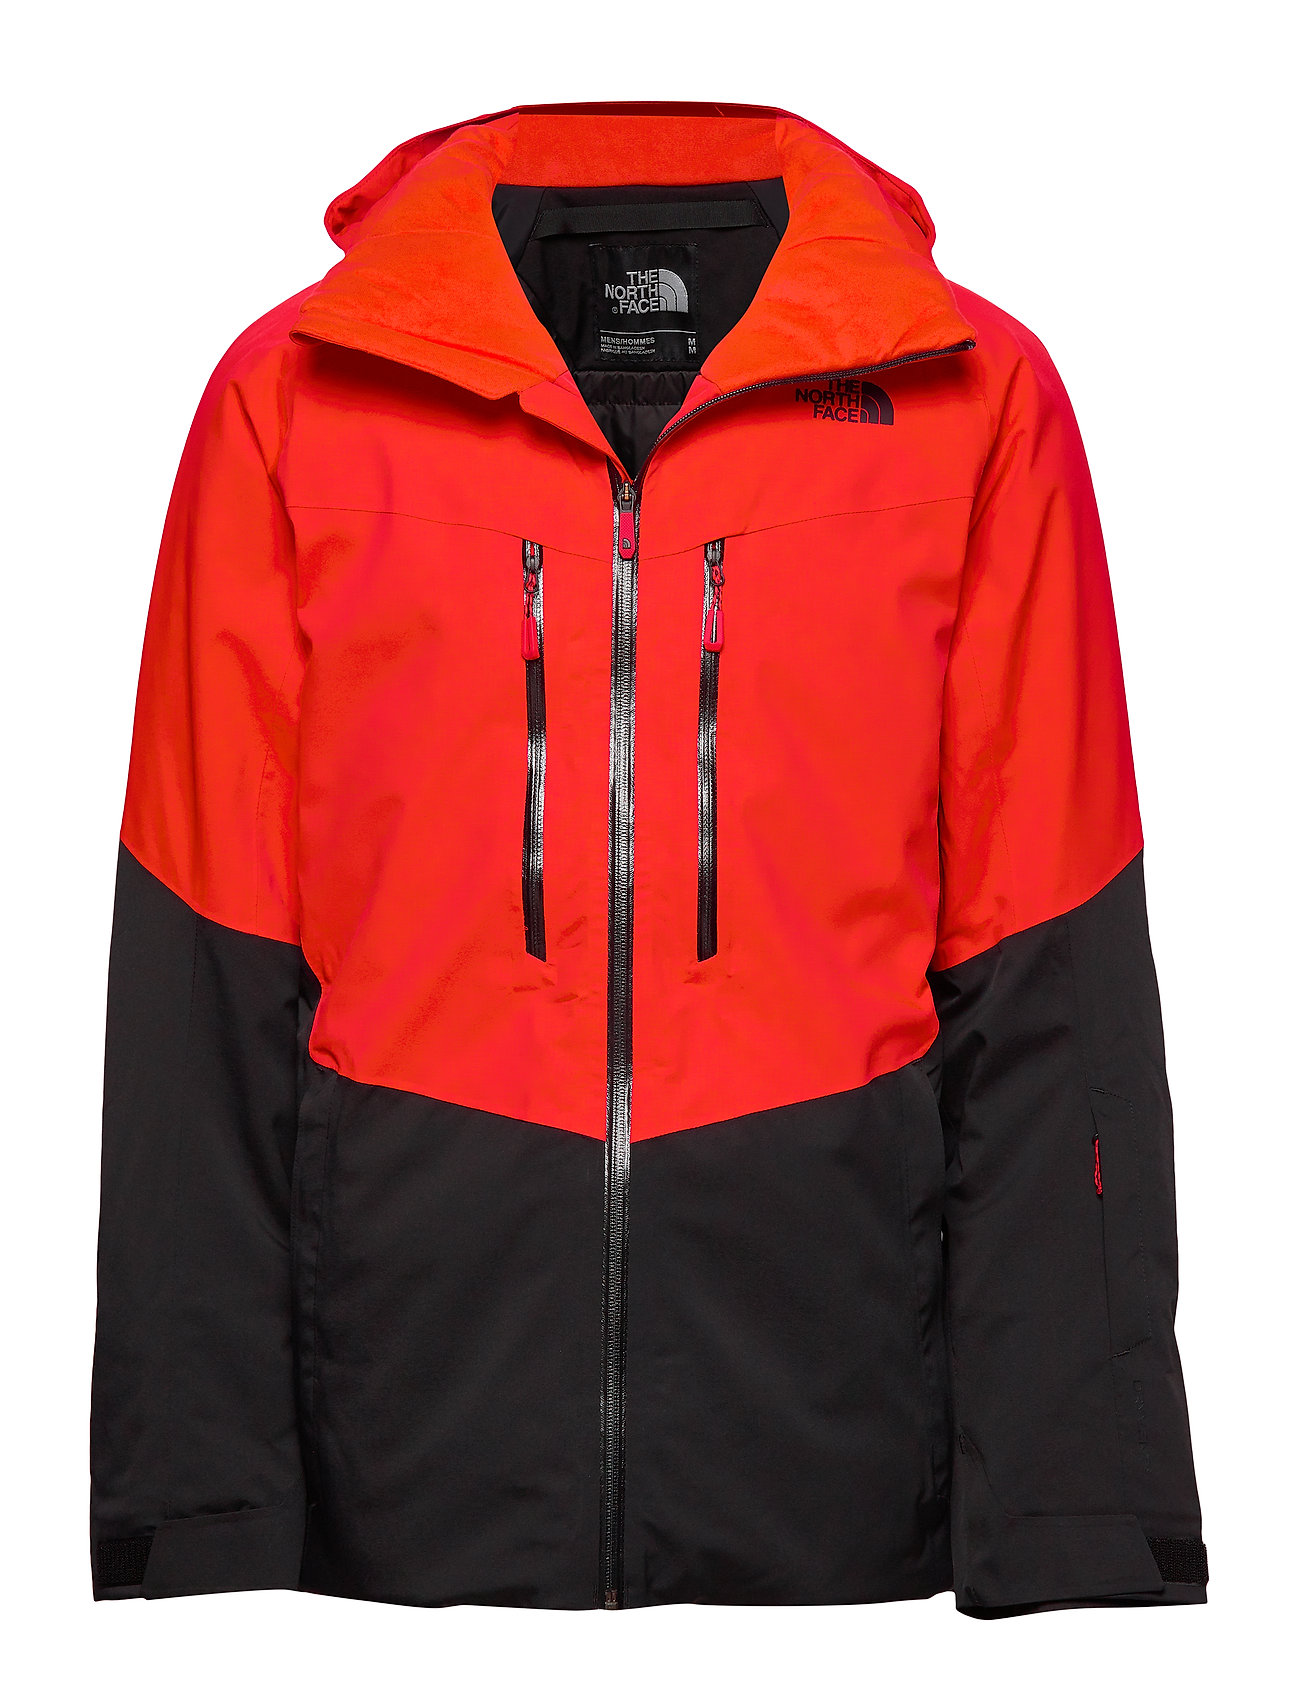 The North Face M CHAKAL JKT - FIERY RED/BLACK